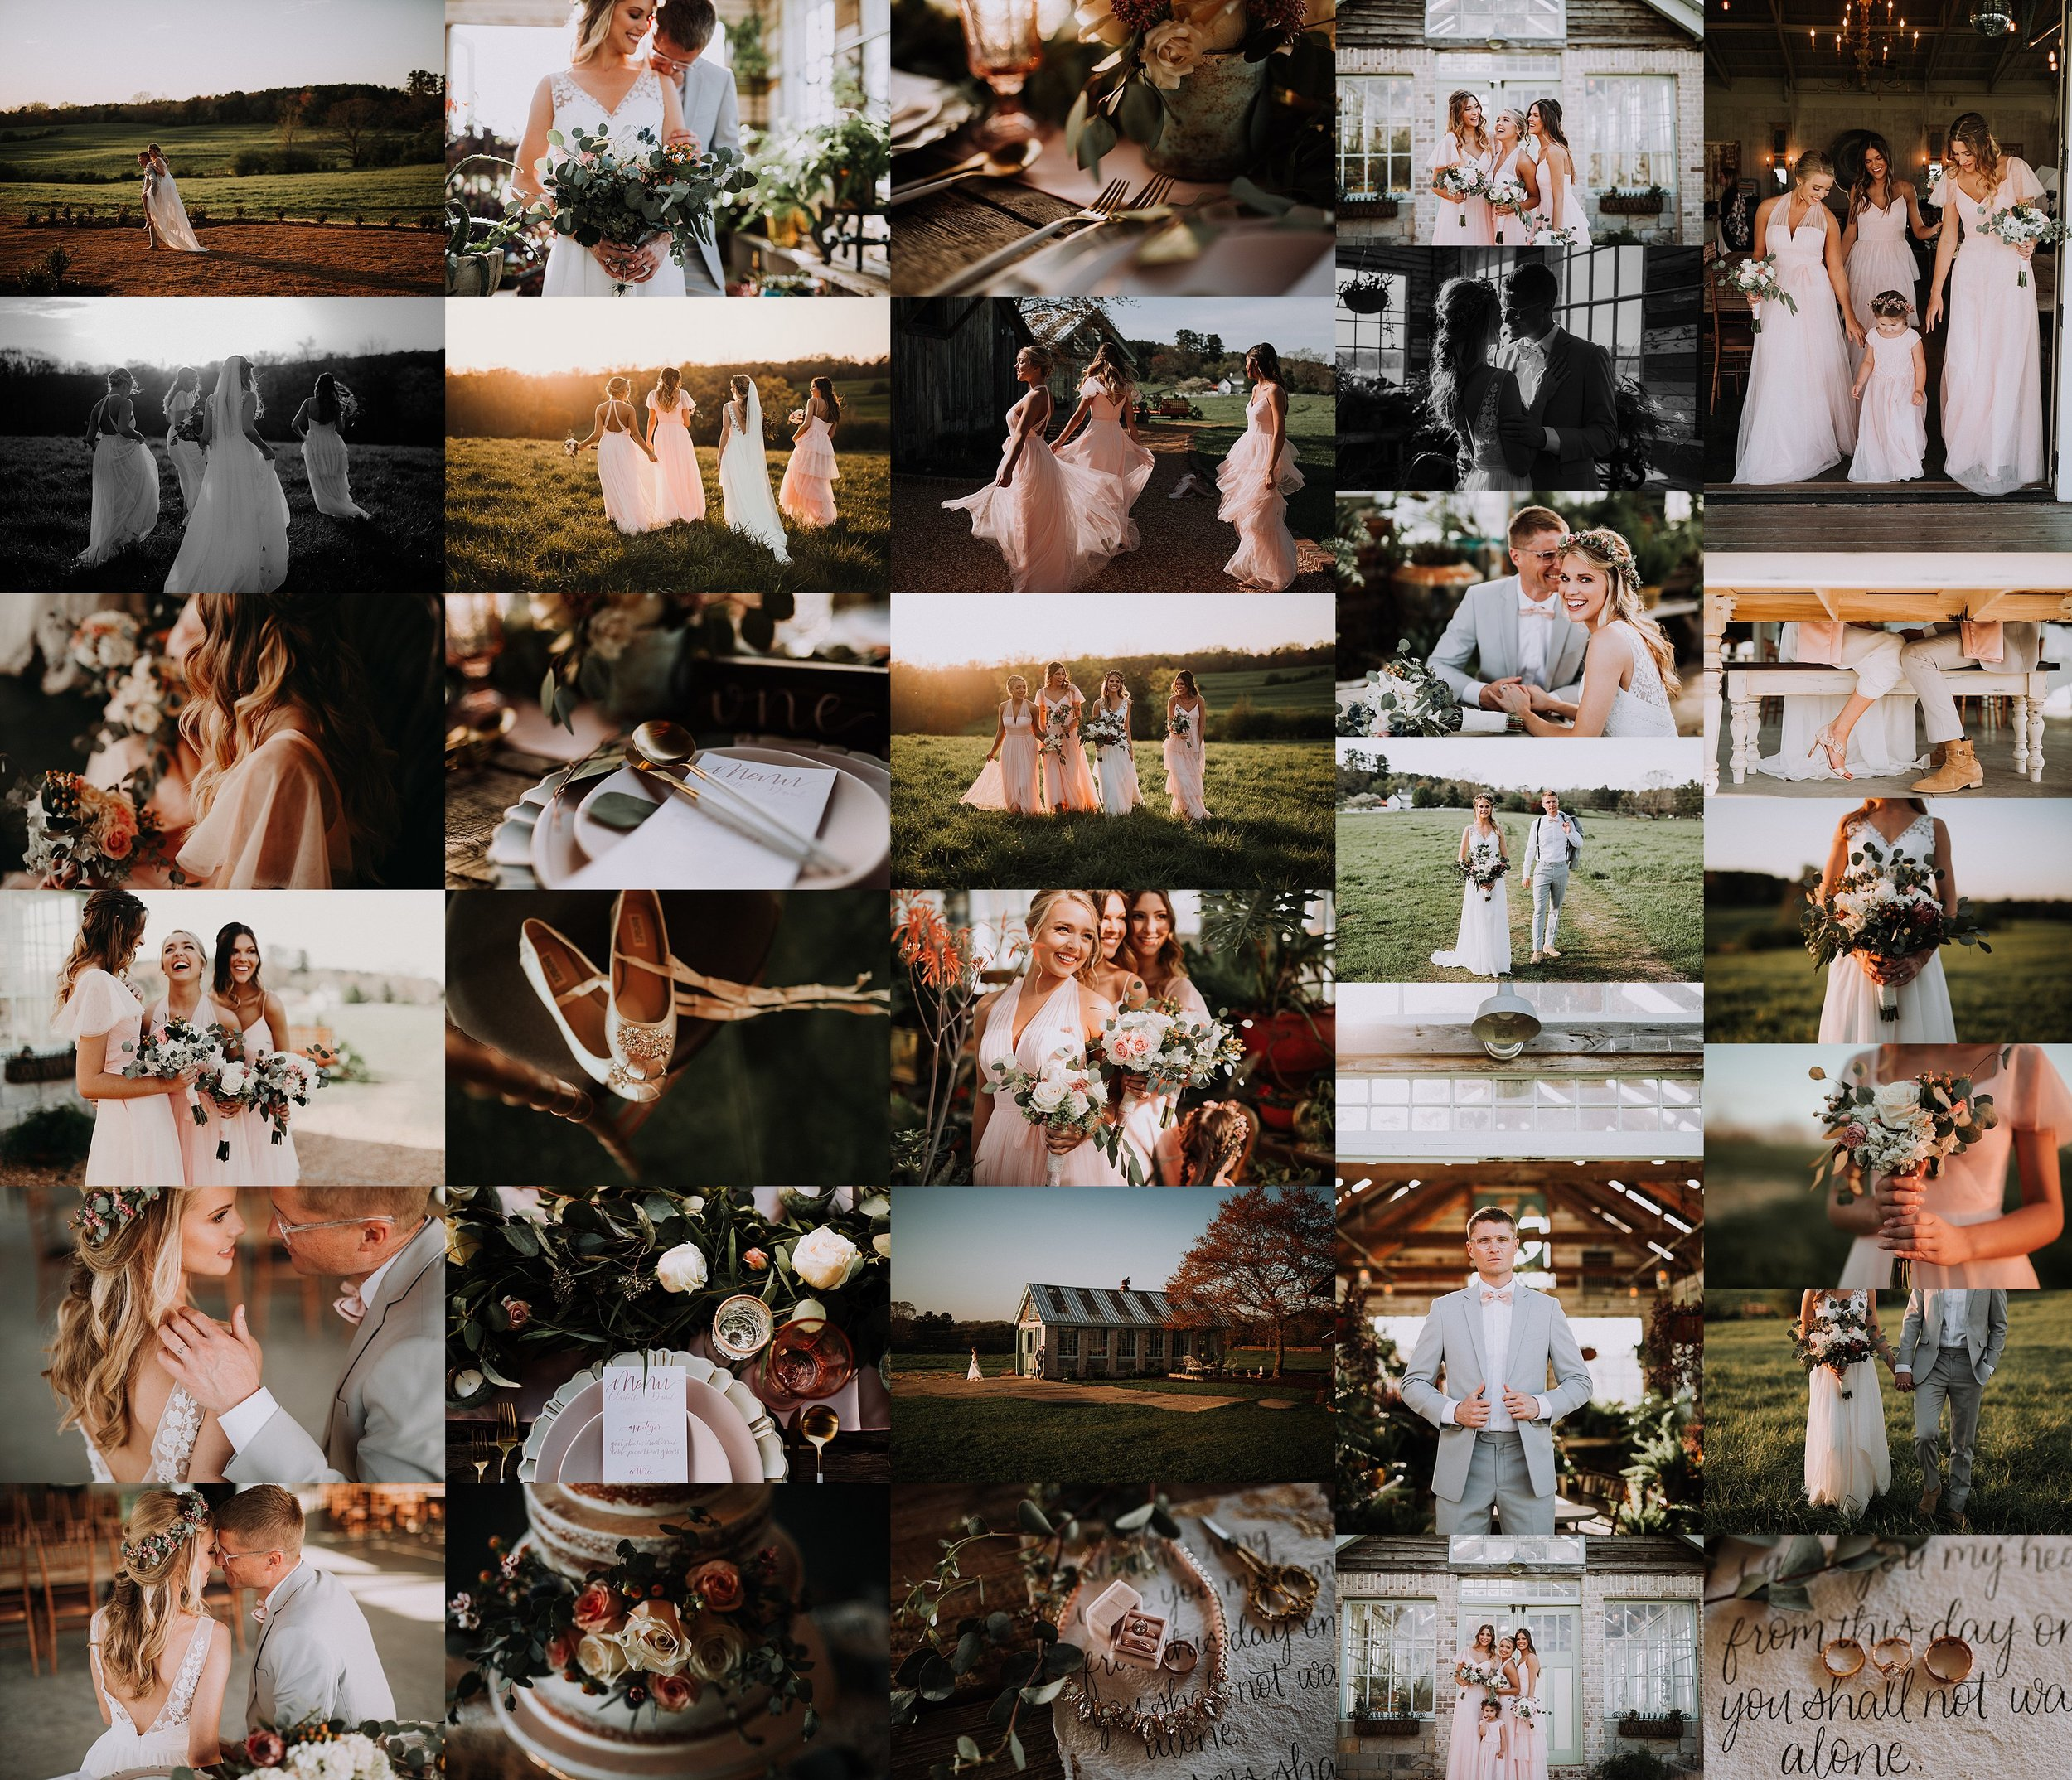 One of the most beautiful wedding's I've ever had the pleasure to be a part of!!